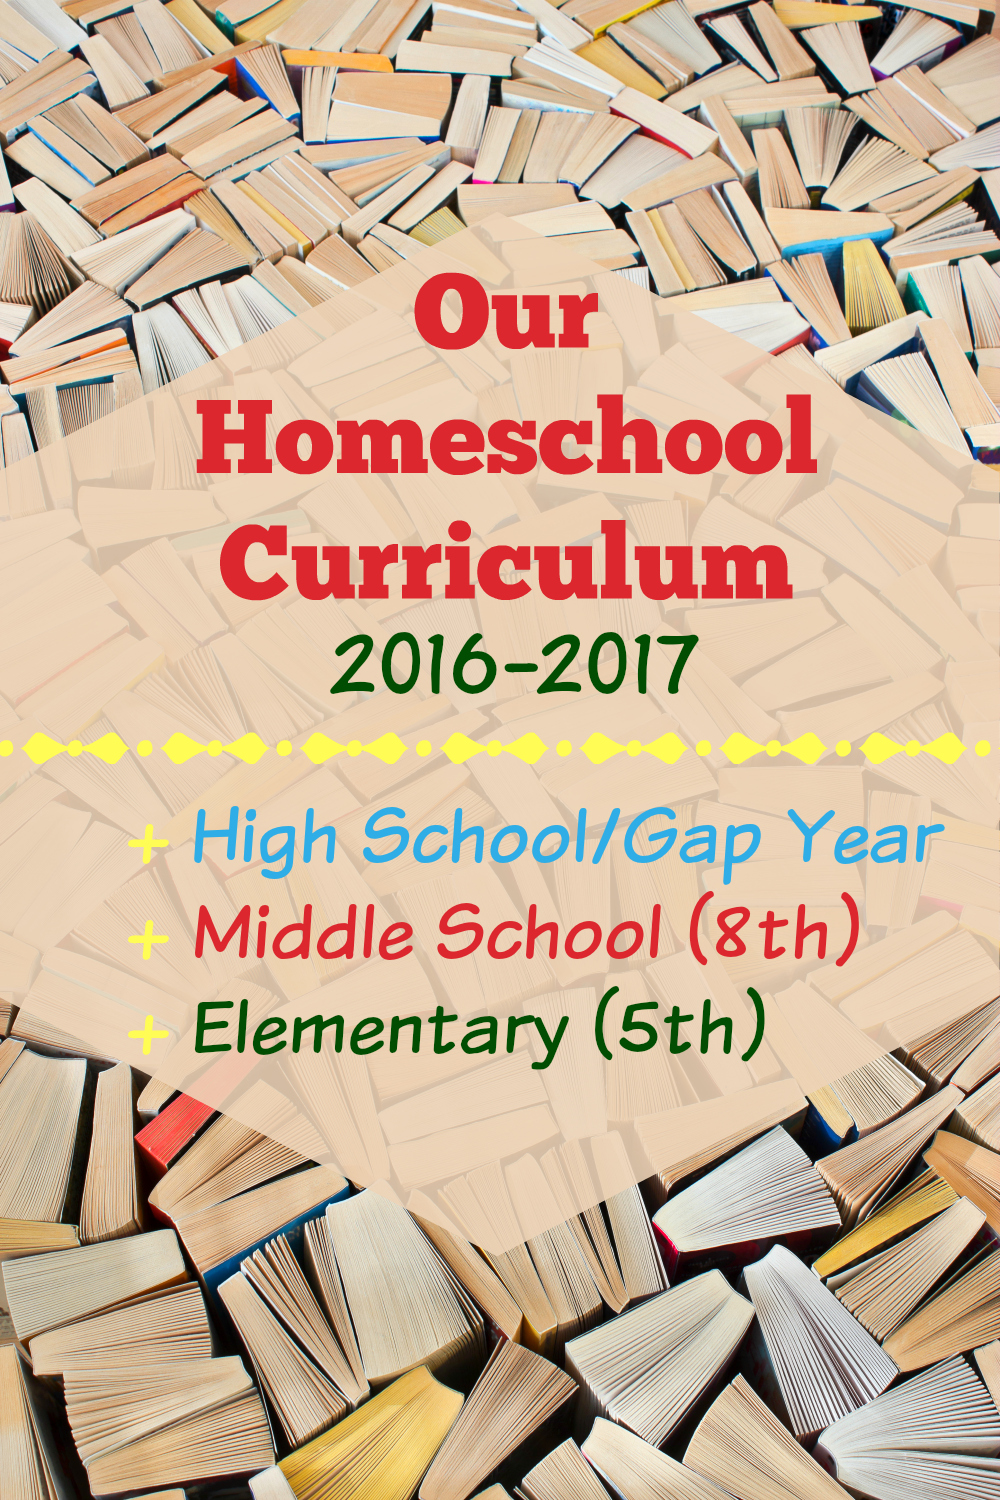 Our Homeschool Curriculum 2016-2017 from Starts At Eight